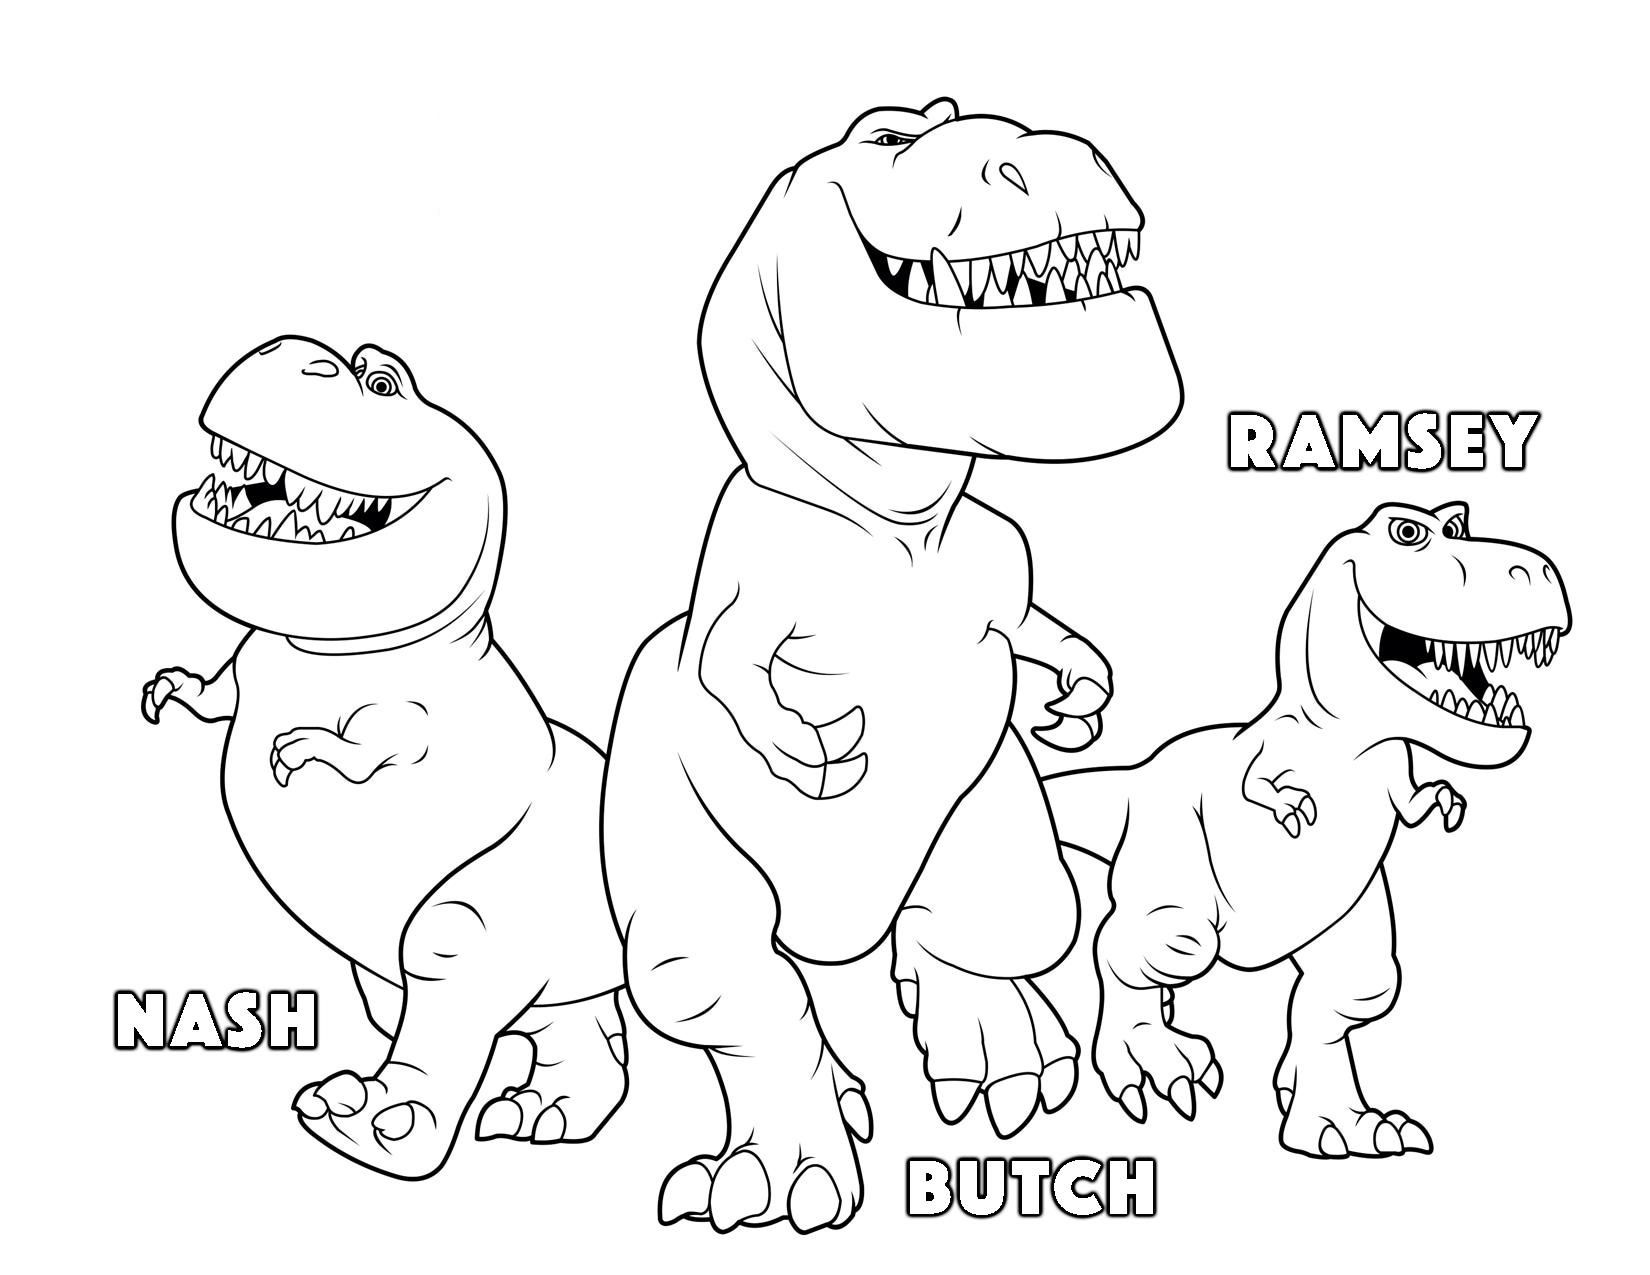 Dinosaurs coloring games online - The Good Dinosaur Butch Ramsey Nash Coloring Pages Kids Coloring Pages